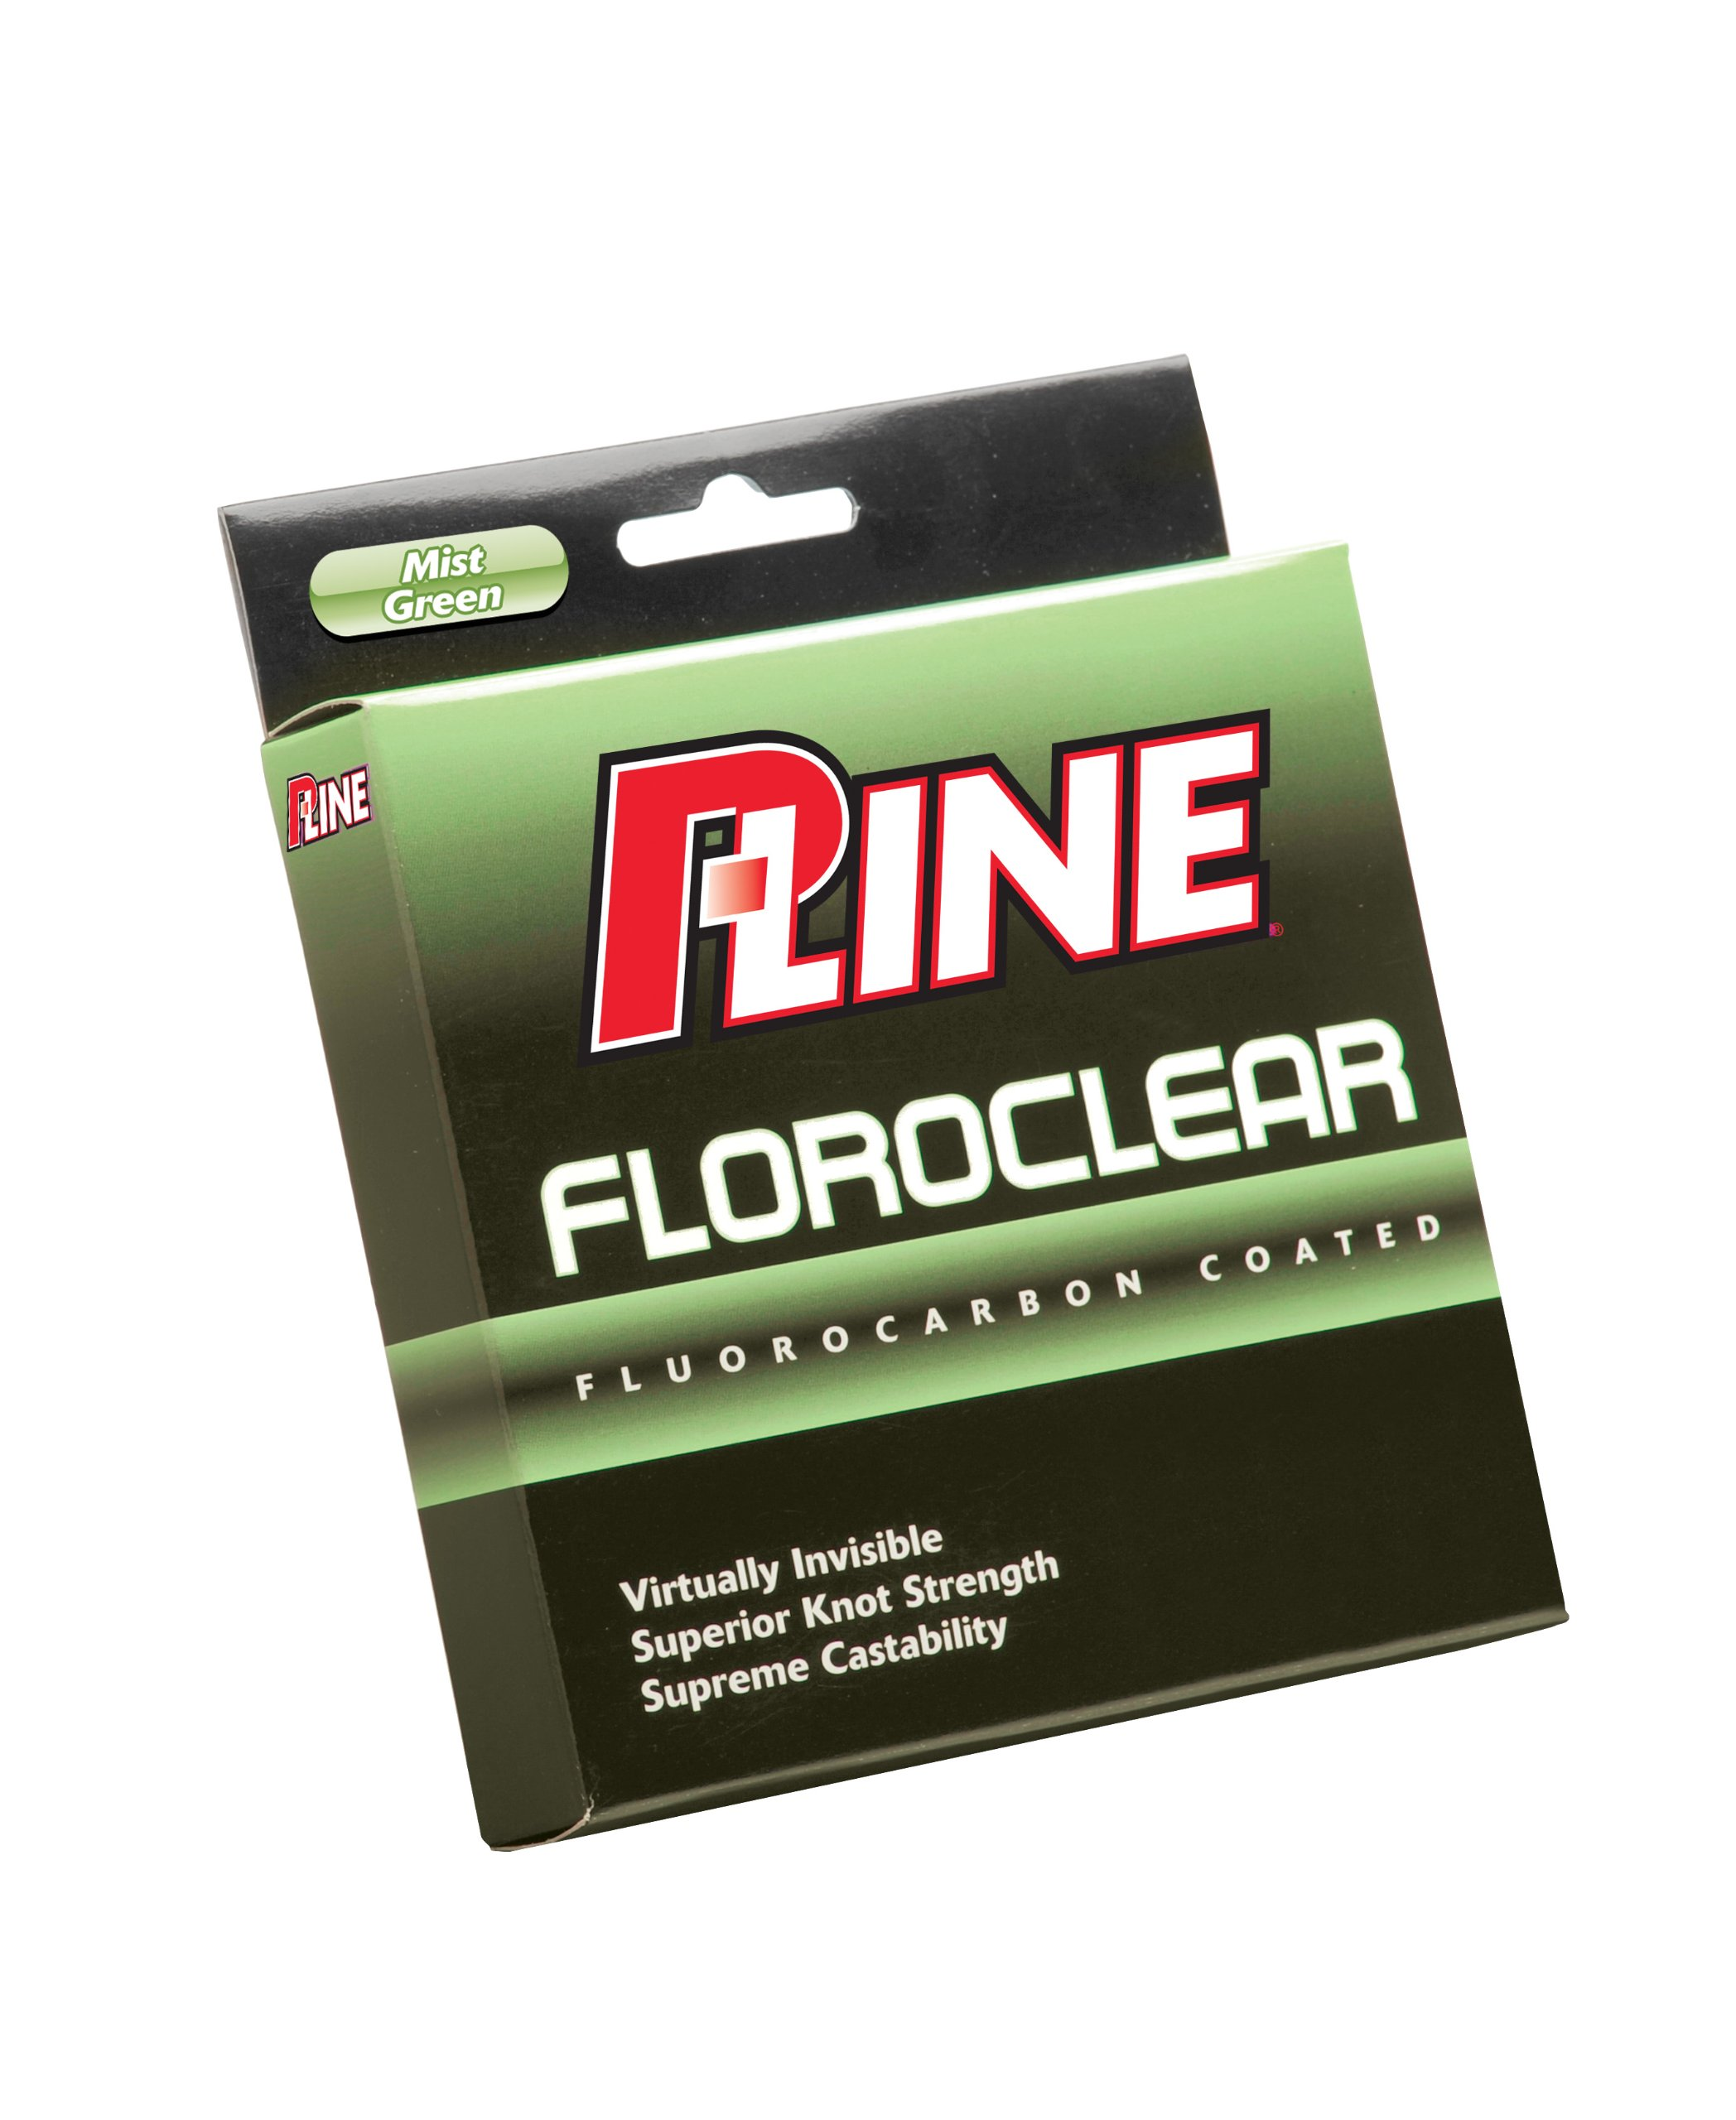 P-Line Floroclear 300-Yard Filler Fishing Line ( 25-Pound, Mist Green) by P-Line